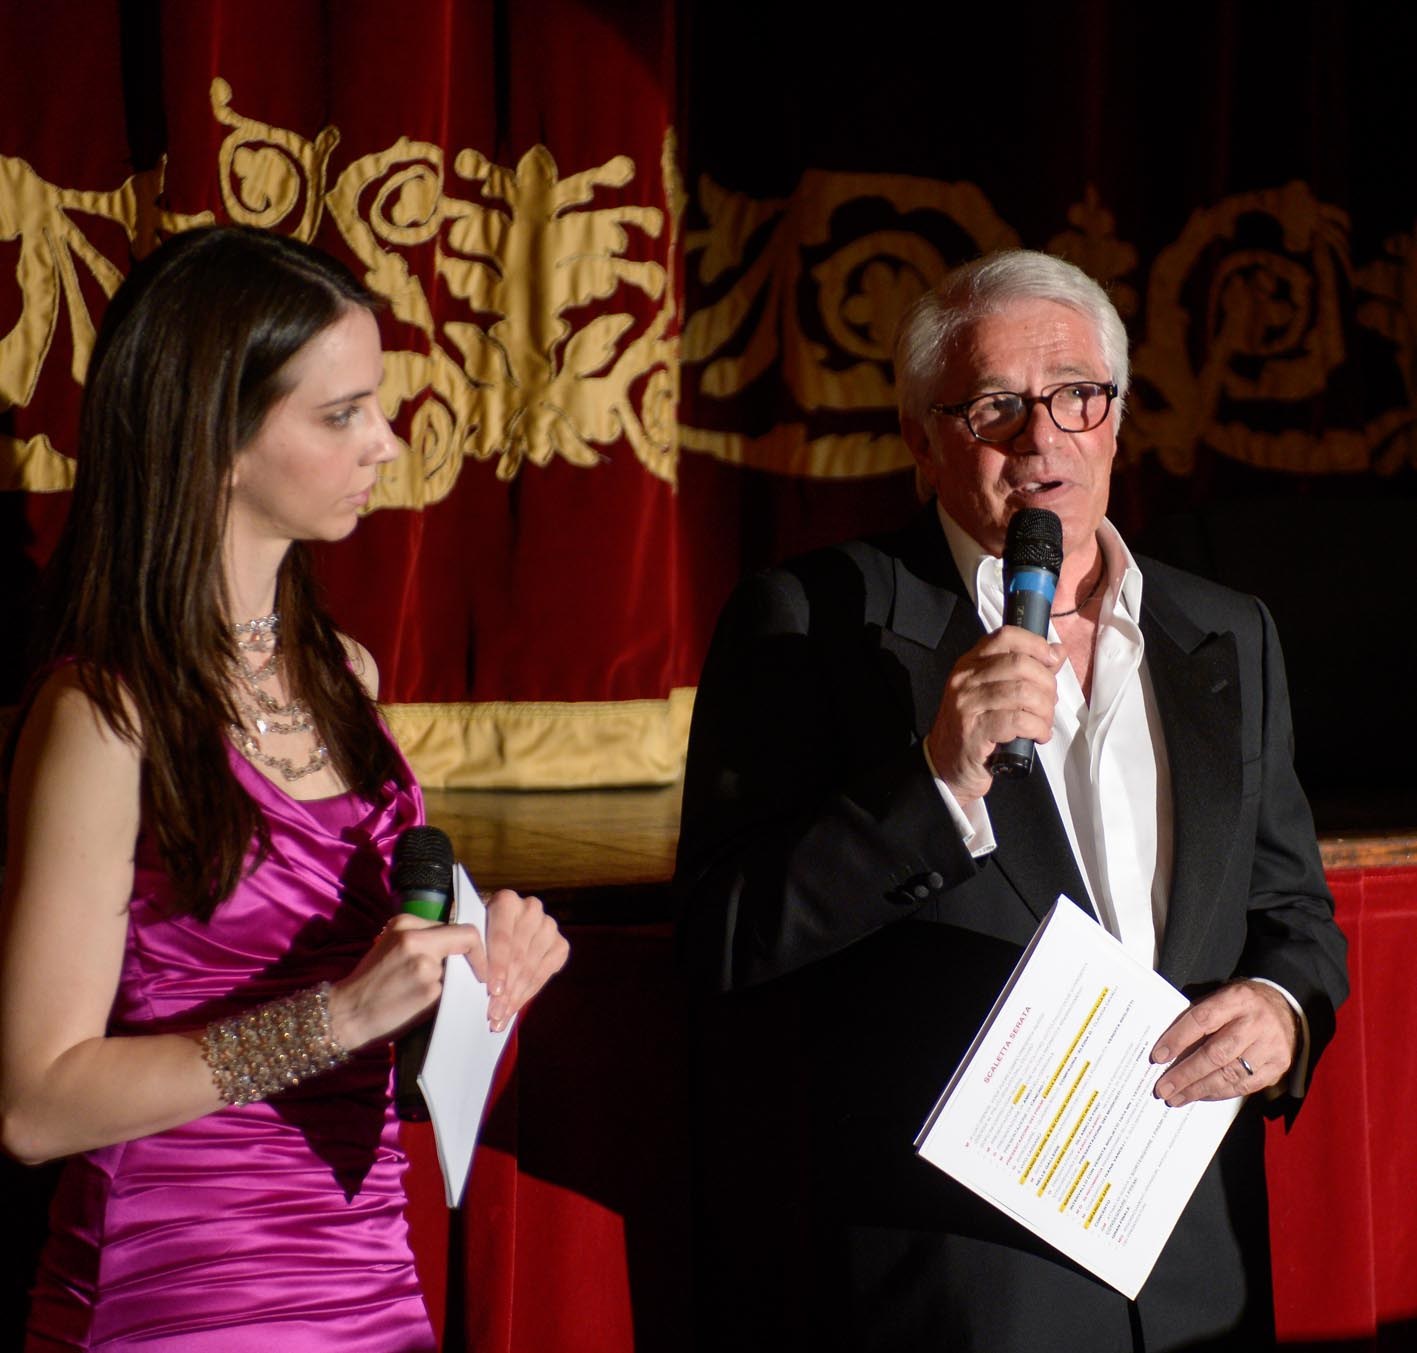 Testimonial and host for a fundraising event